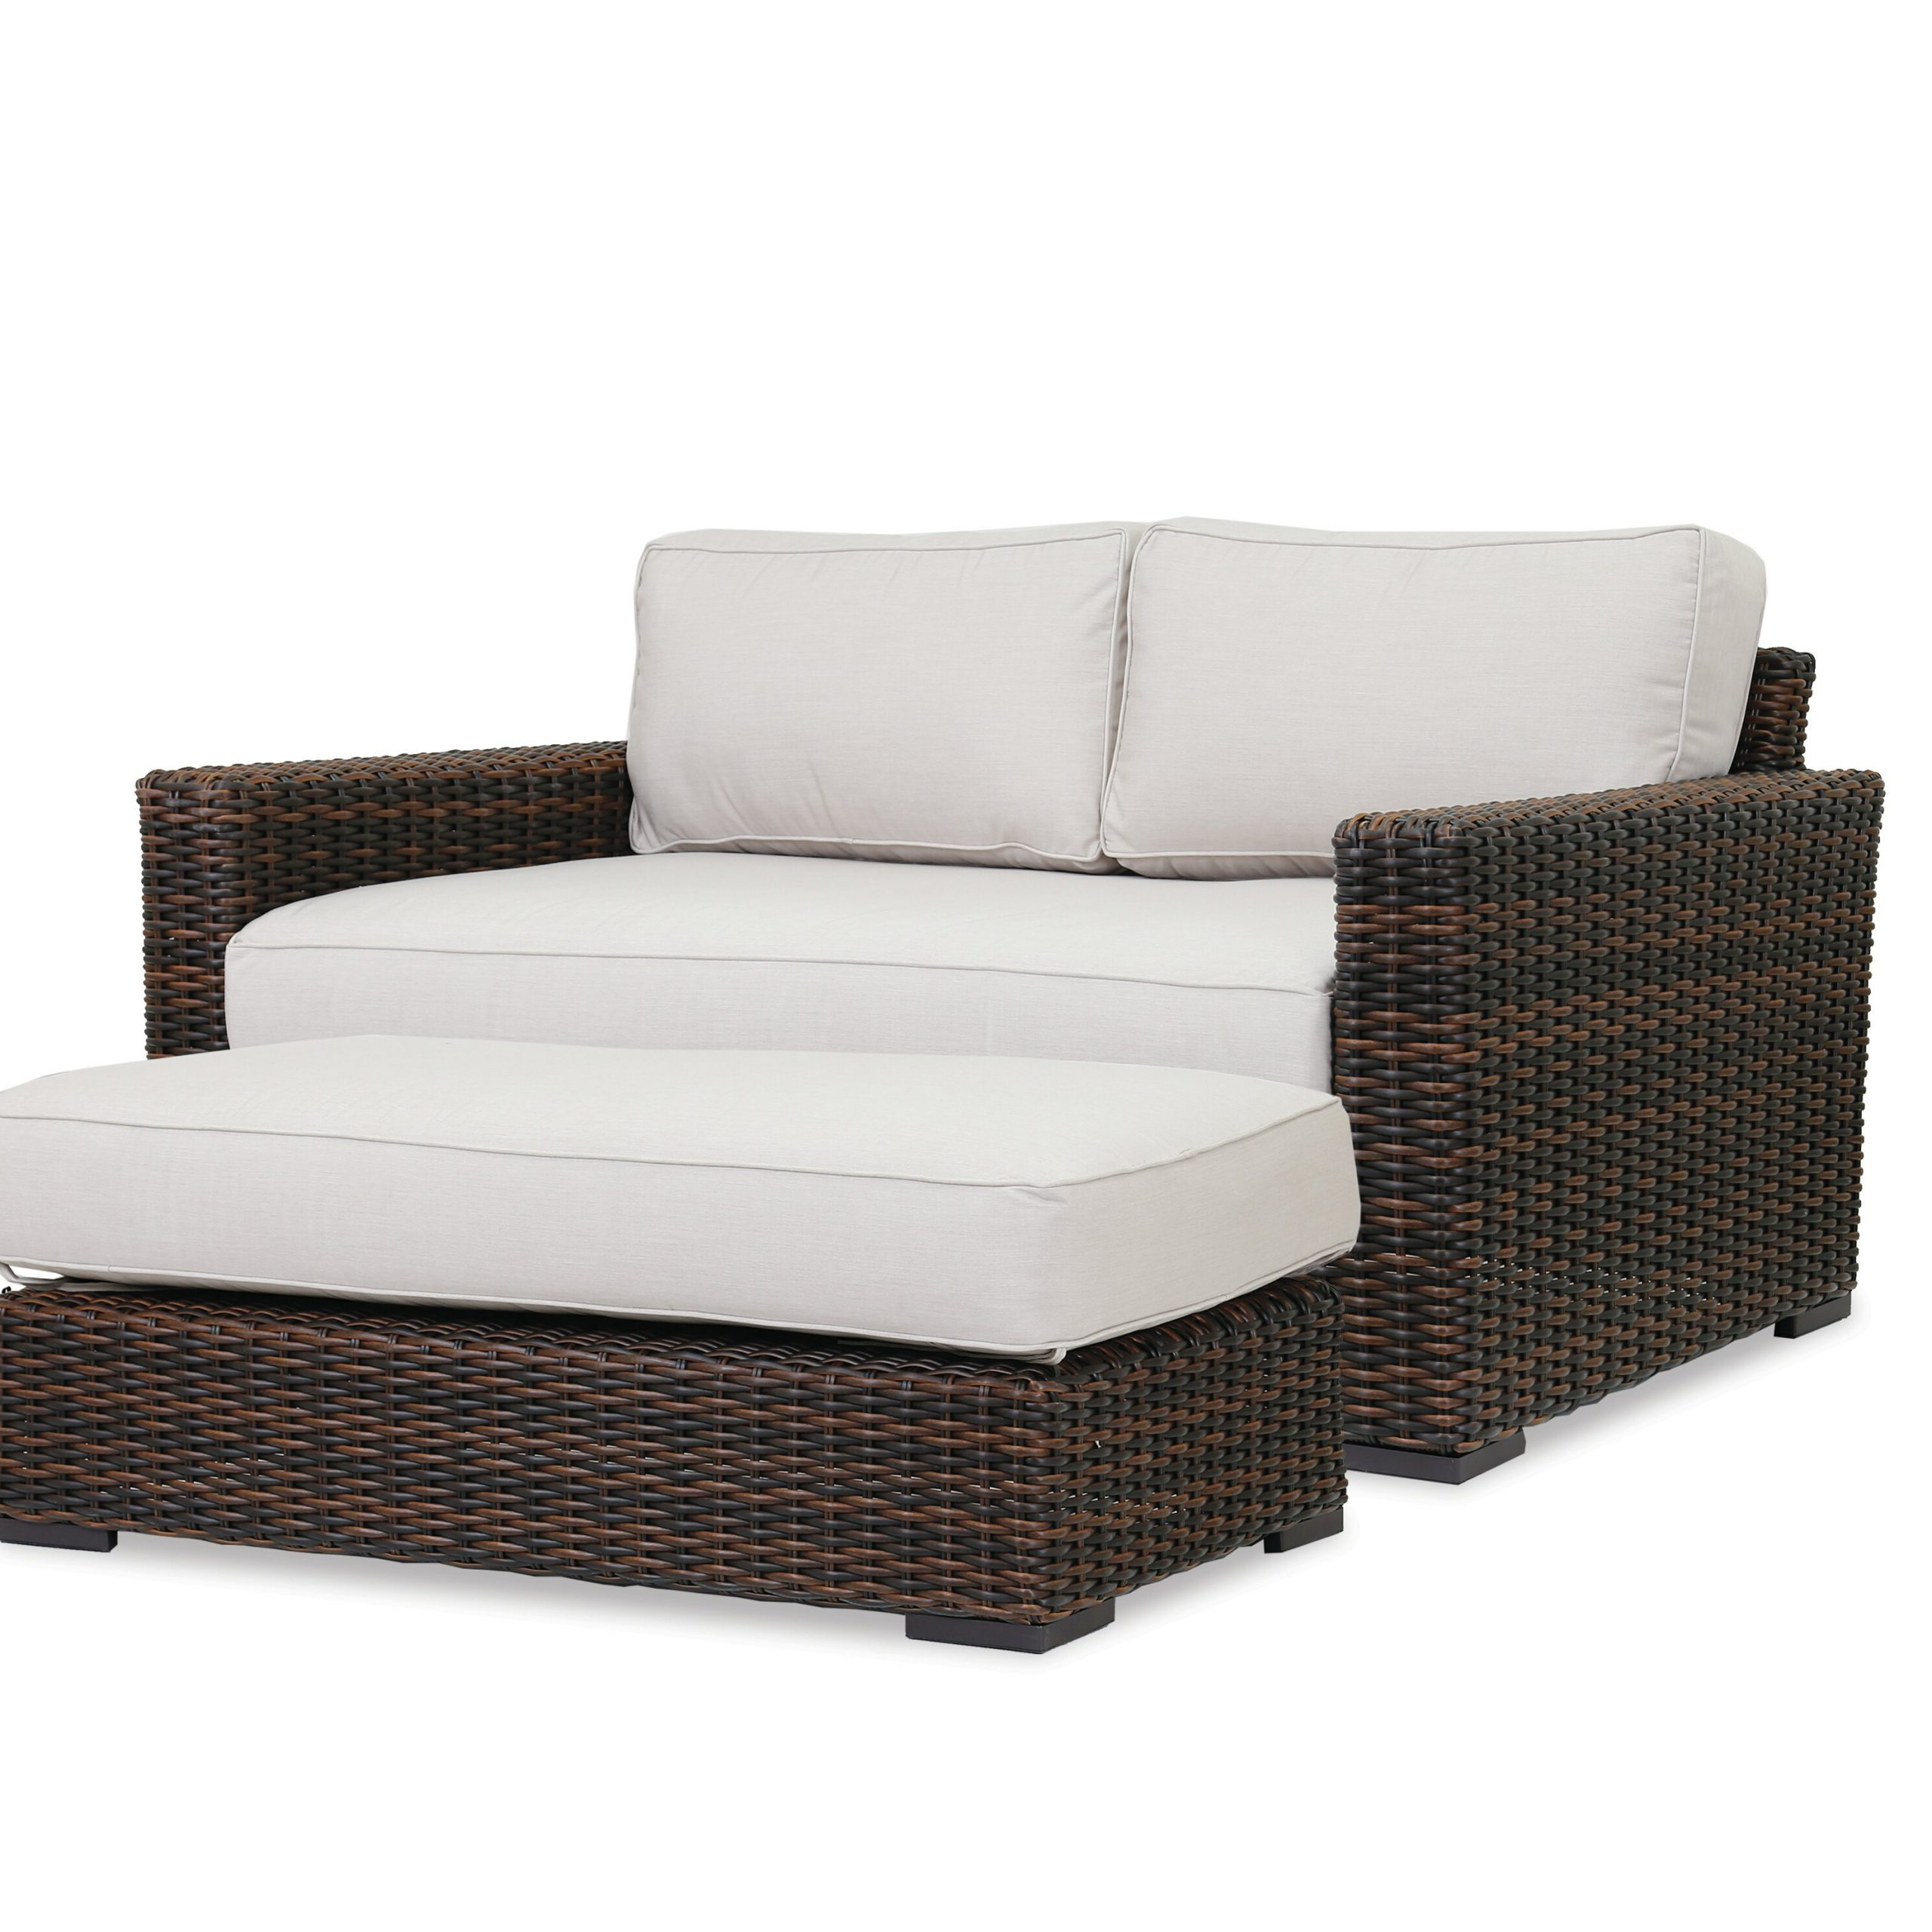 Oceanside Outdoor Wicker Loveseats With Cushions Regarding Trendy Sunset West Montecito Loveseat With Sunbrella Cushions (View 12 of 25)